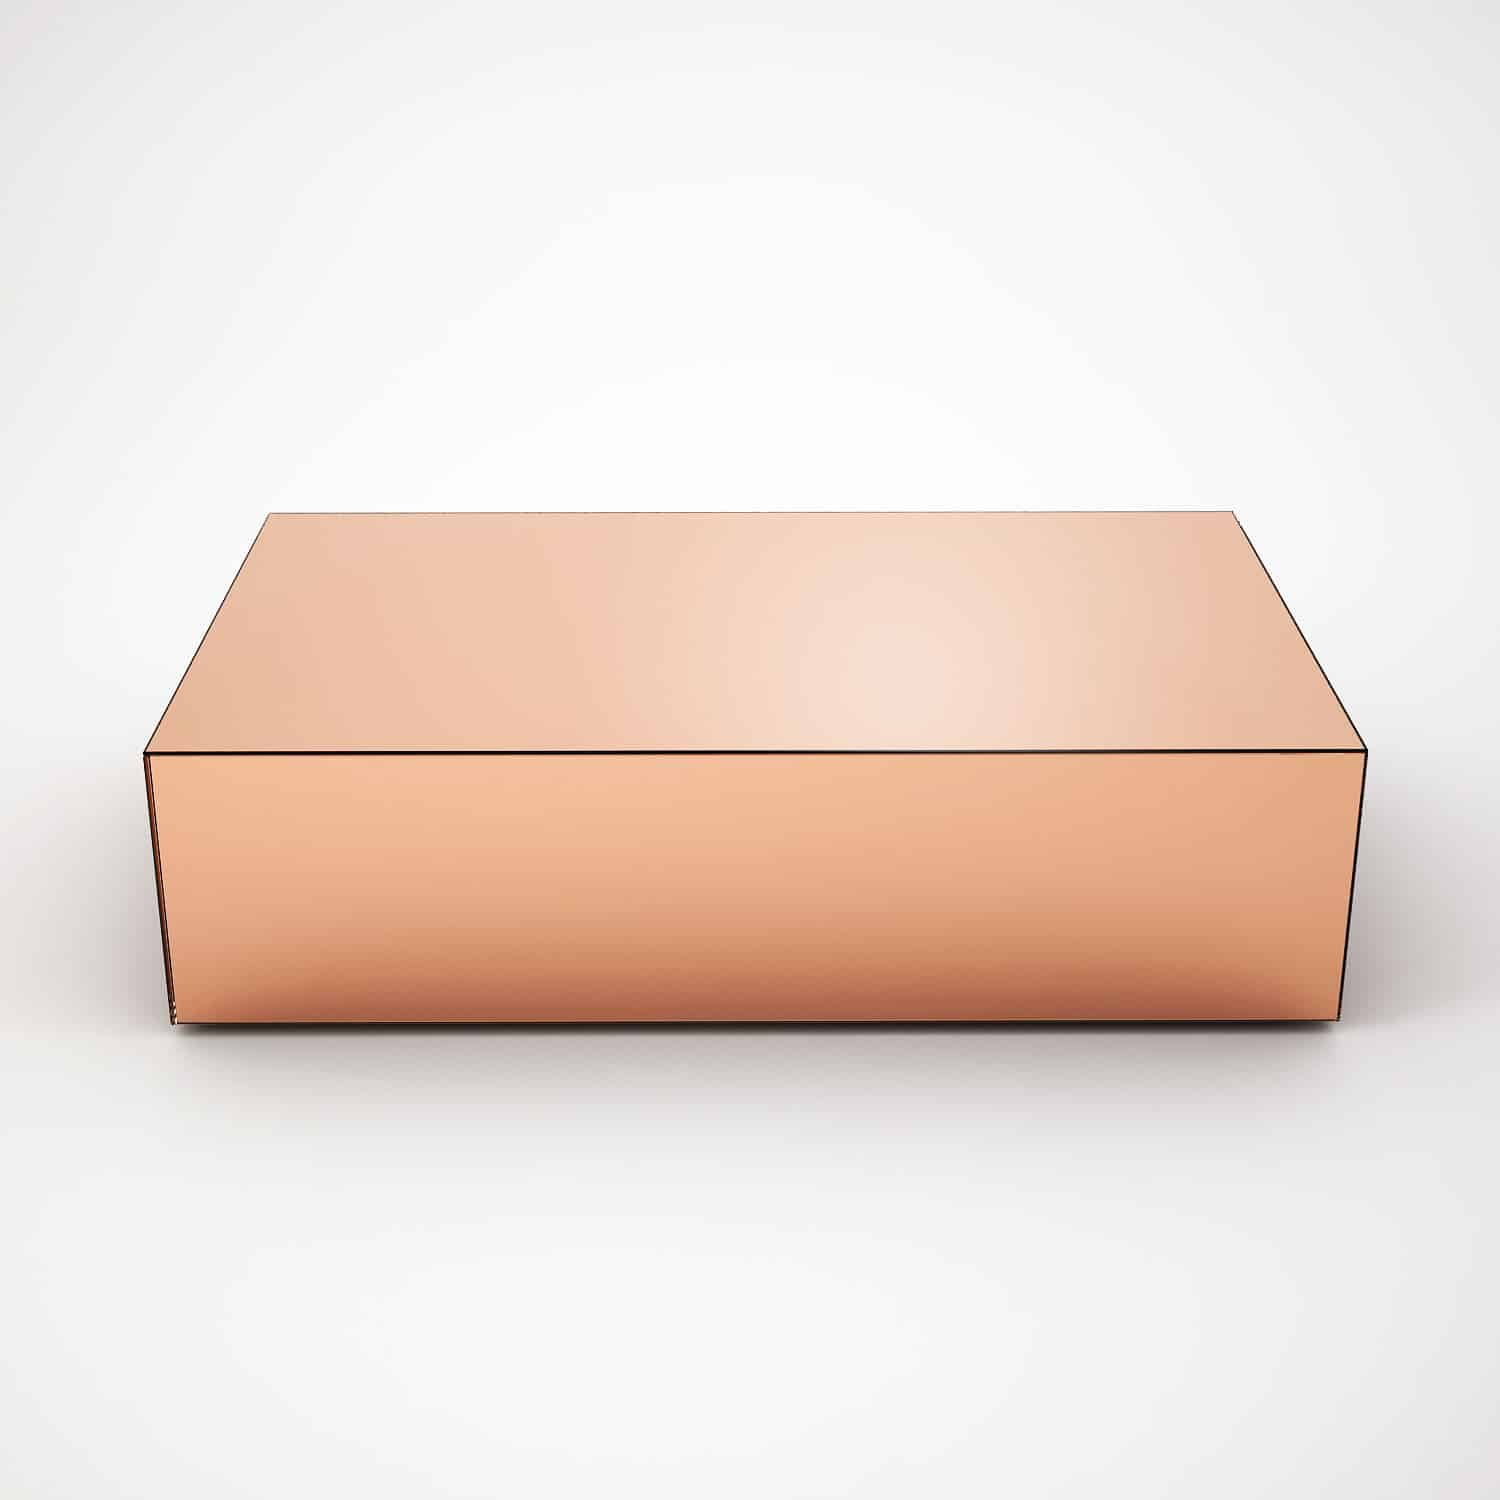 Copper Top Rectangular Coffee Table: Rectangular Copper Mirrored Coffee Table By MirrorBox